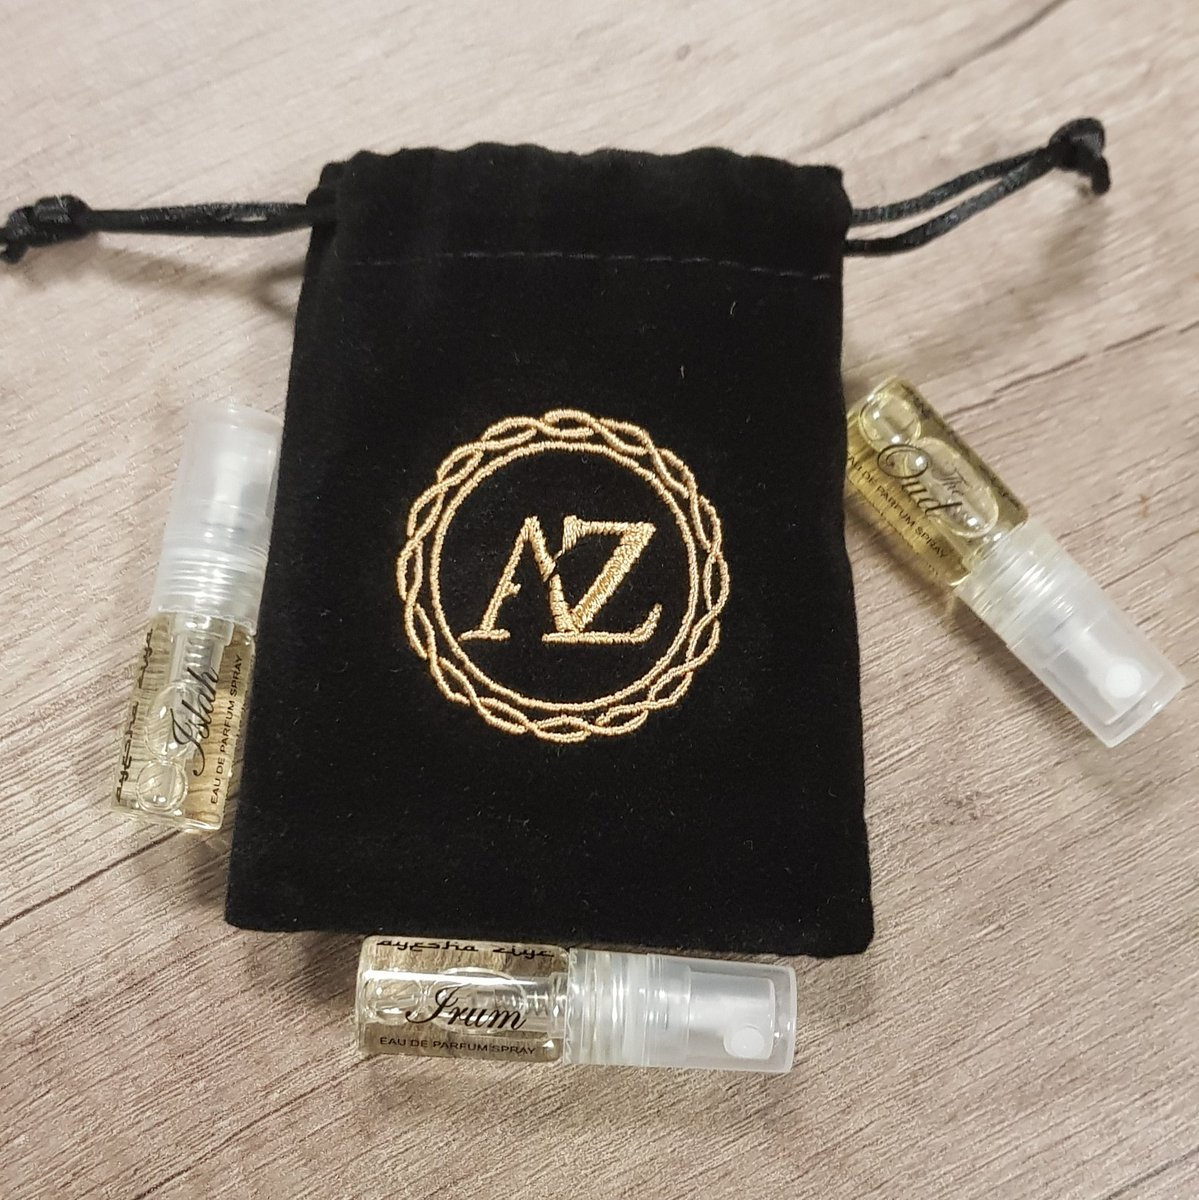 It&#39;s #FreebieFriday time!  #Win a sample of our fragrances. To enter, follow us and retweet. Winner announced on Tuesday  #AyeshaZiya #ShopAyeshaZiya #Friyay <br>http://pic.twitter.com/Xy8PuVXesn